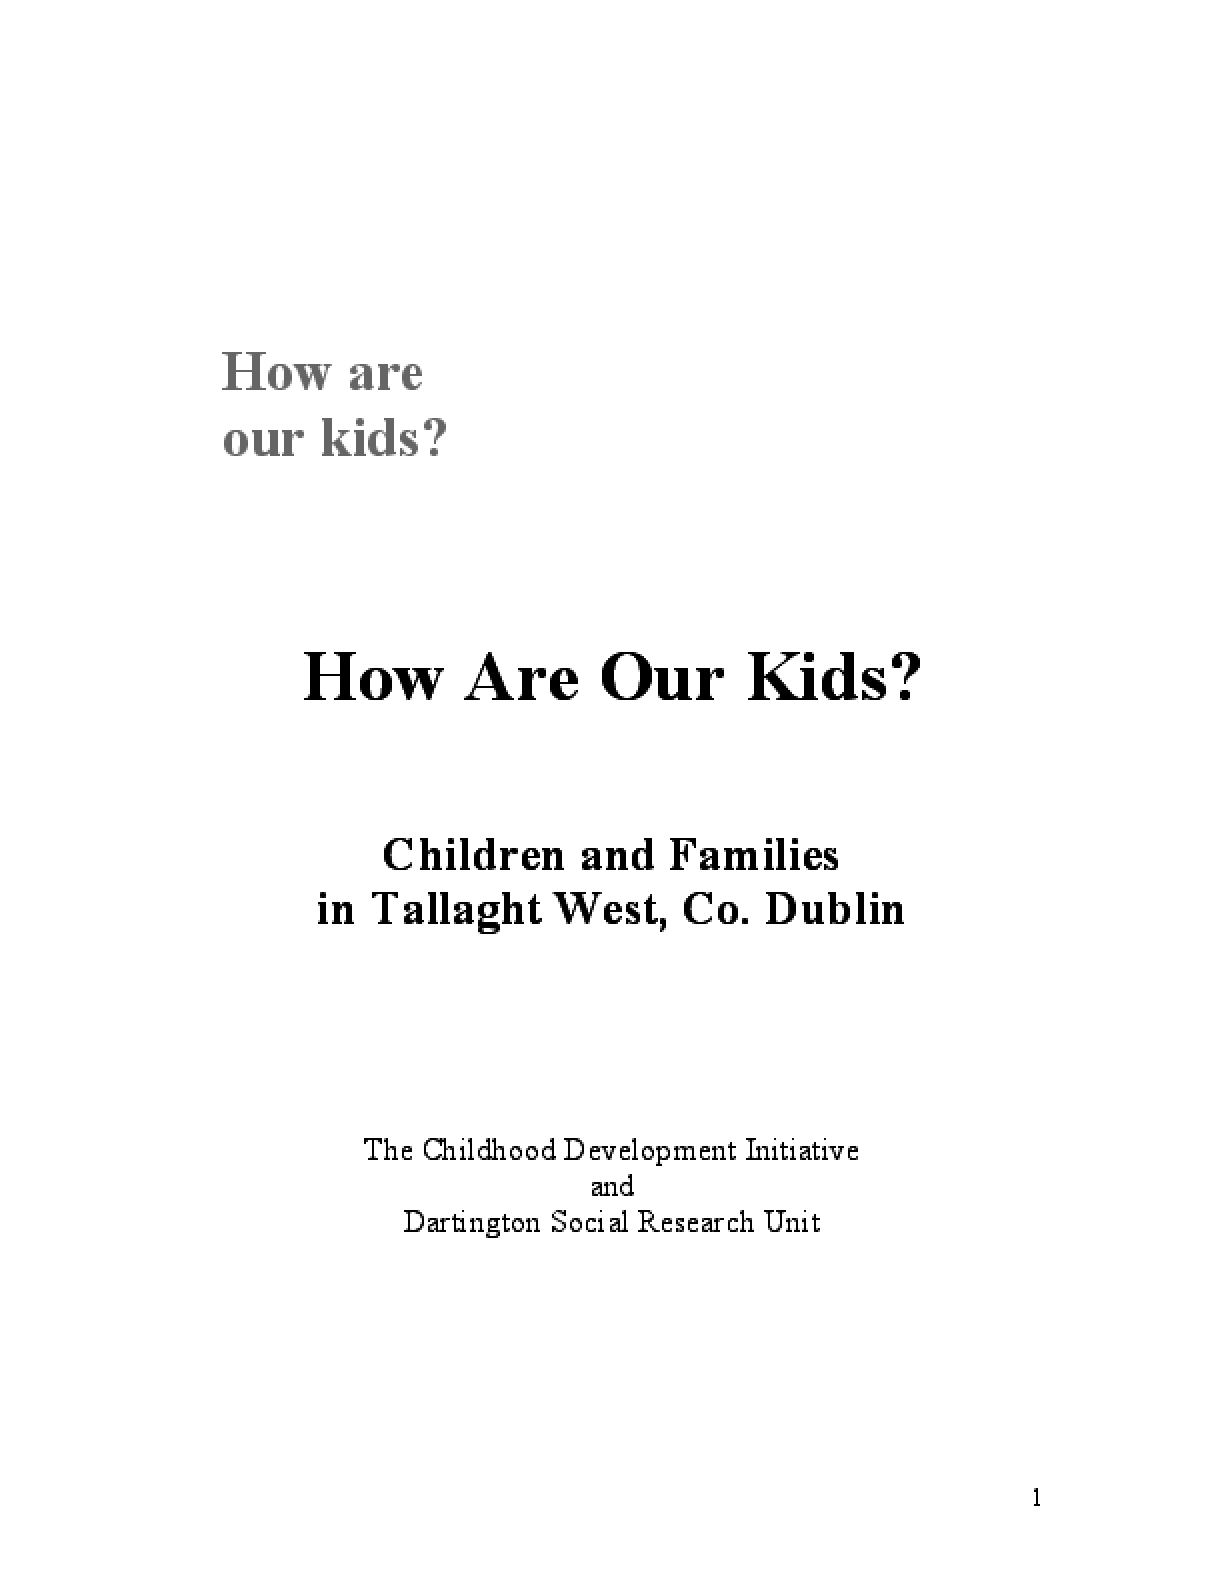 How Are Our Kids?: Children and Families in Tallaght West, Co. Dublin